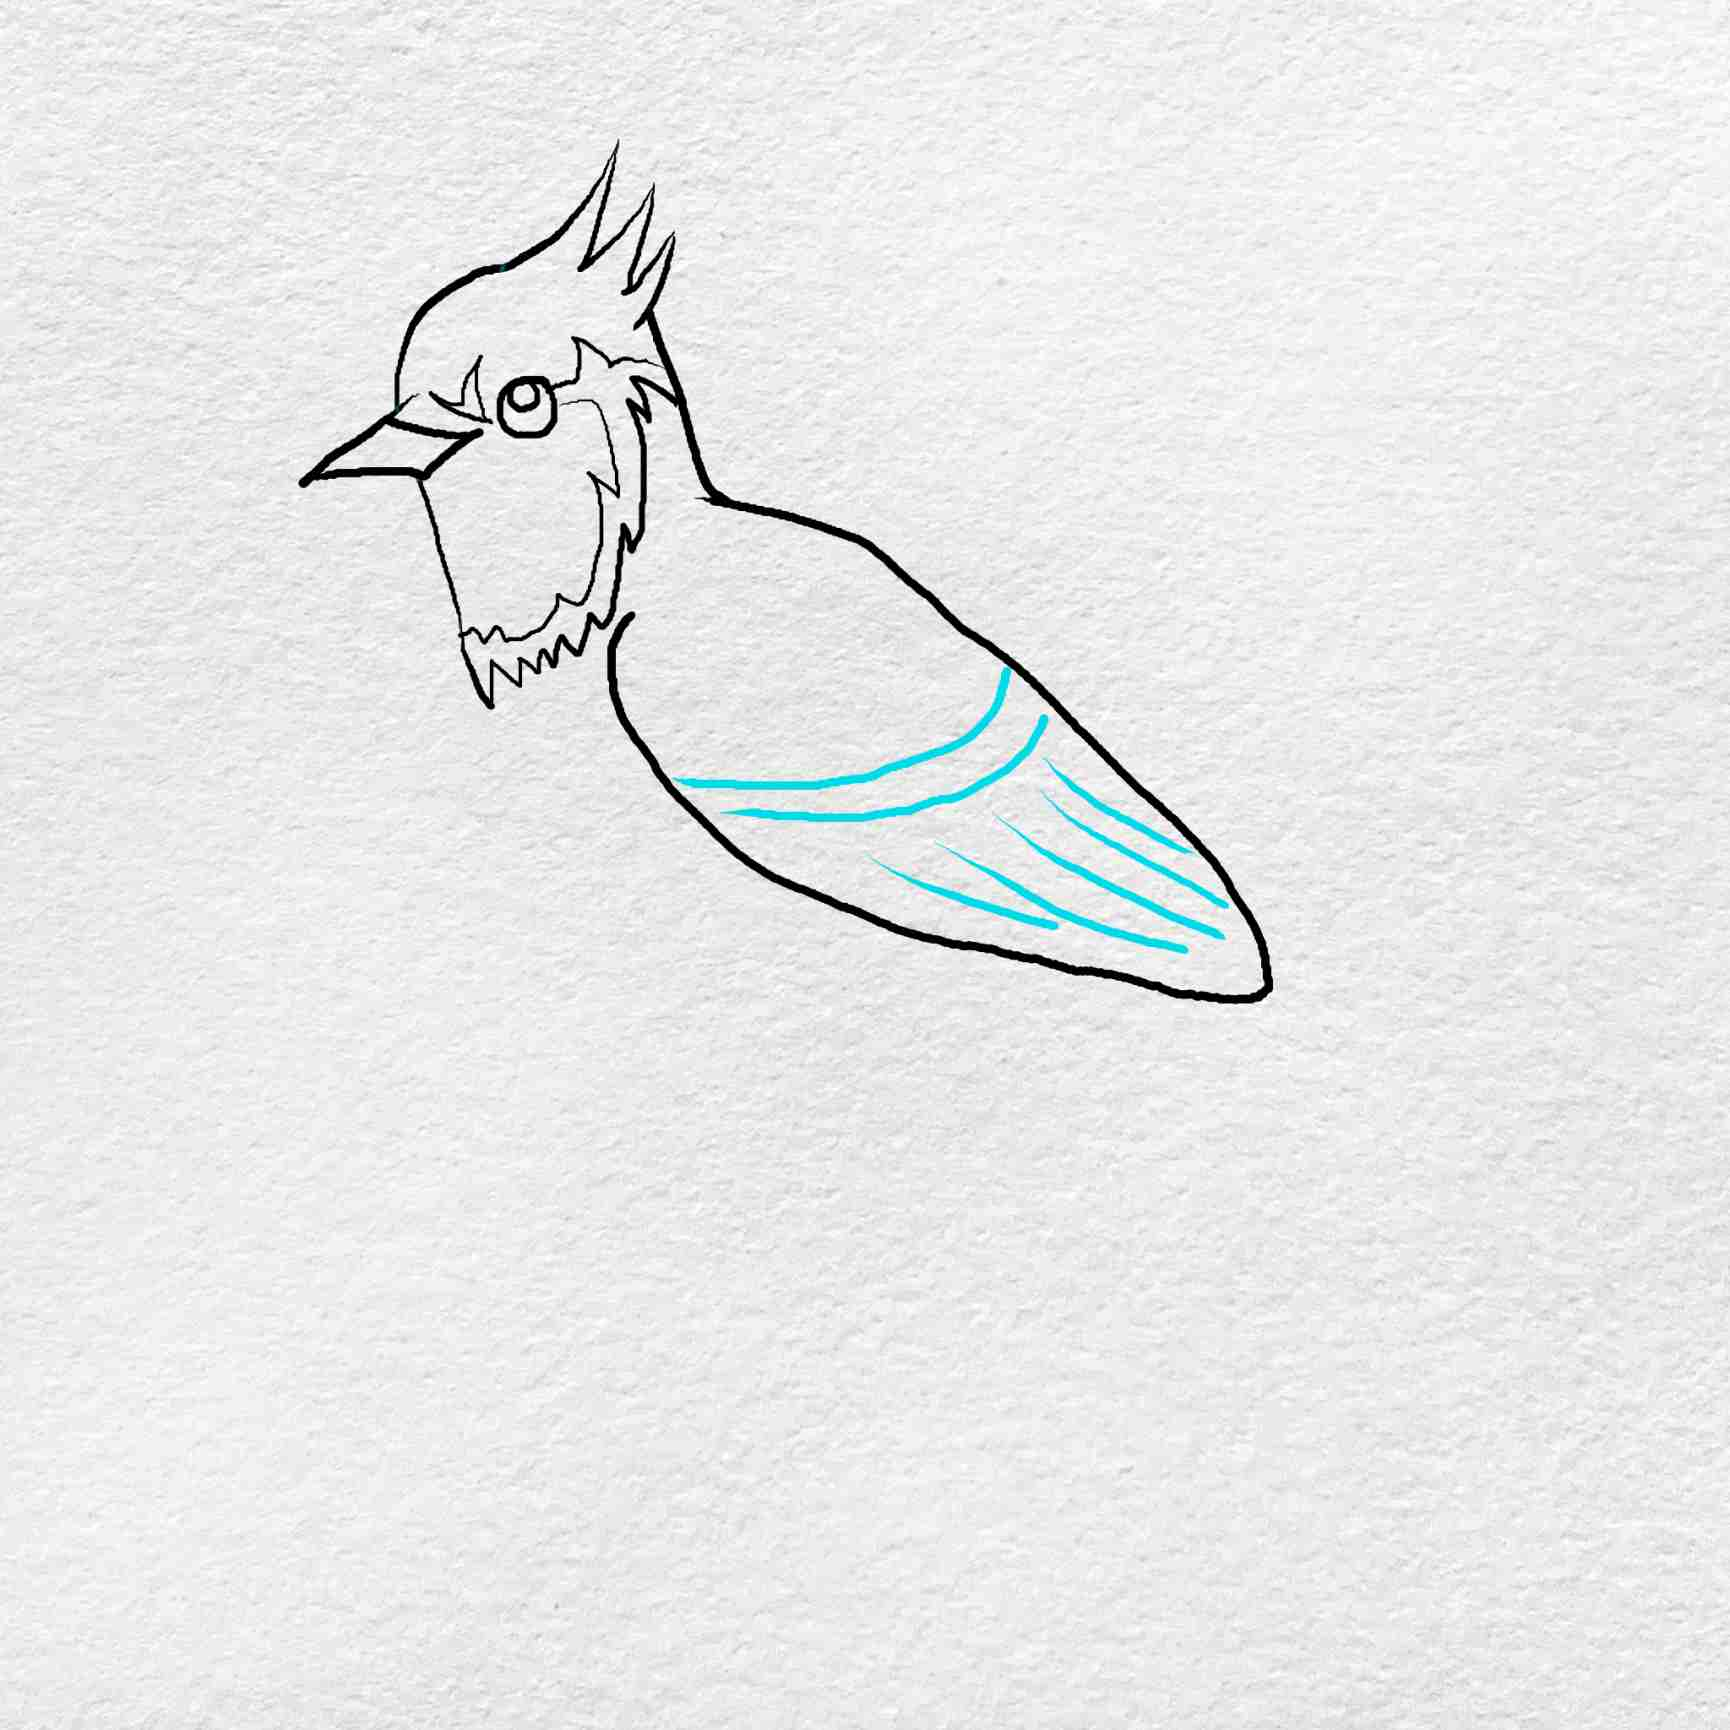 How To Draw A Blue Jay: Step 4